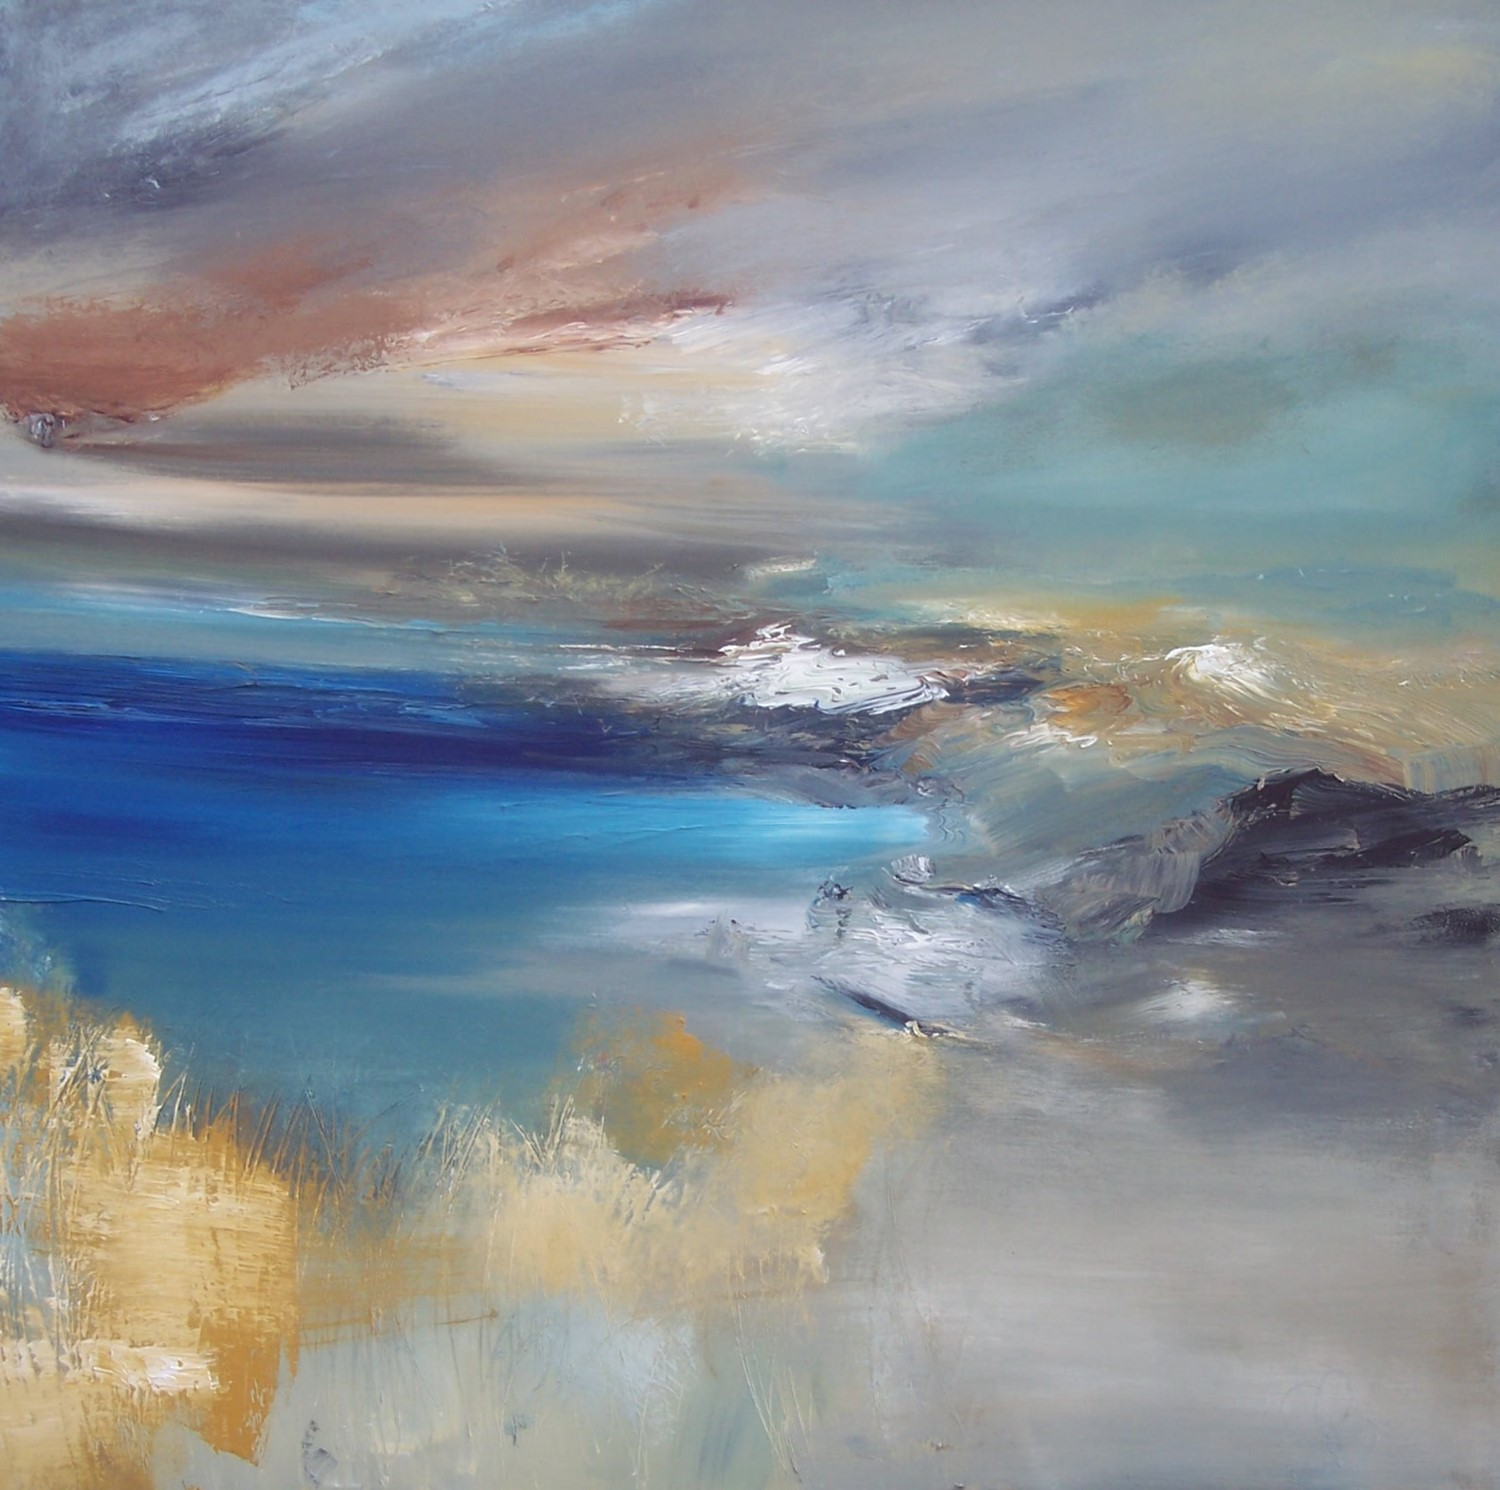 'Cove Bay' by artist Rosanne Barr